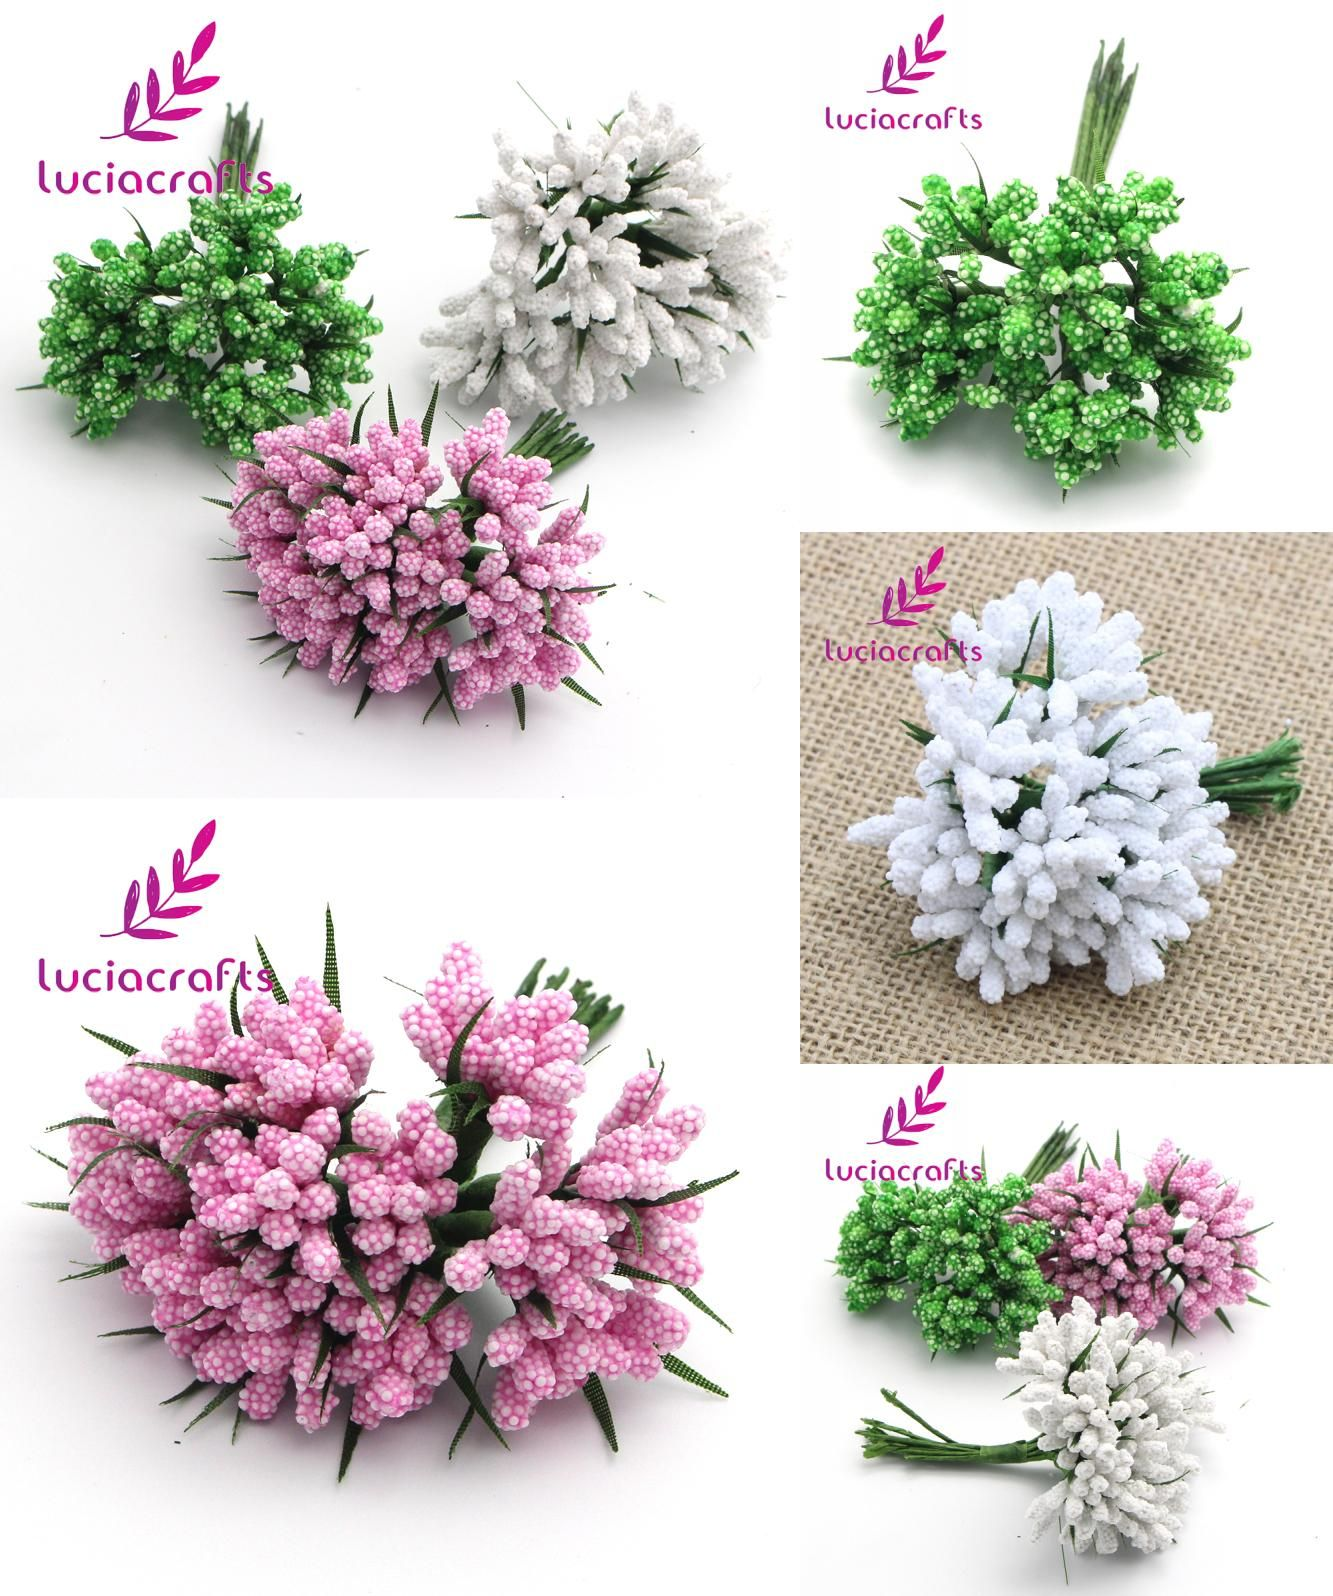 Visit to buy lucia crafts foam flower bud with wire stem diy craft cheap flower buds buy quality foam flowers directly from china craft foam flowers suppliers lucia crafts foam flower bud with wire stem diy craft izmirmasajfo Choice Image